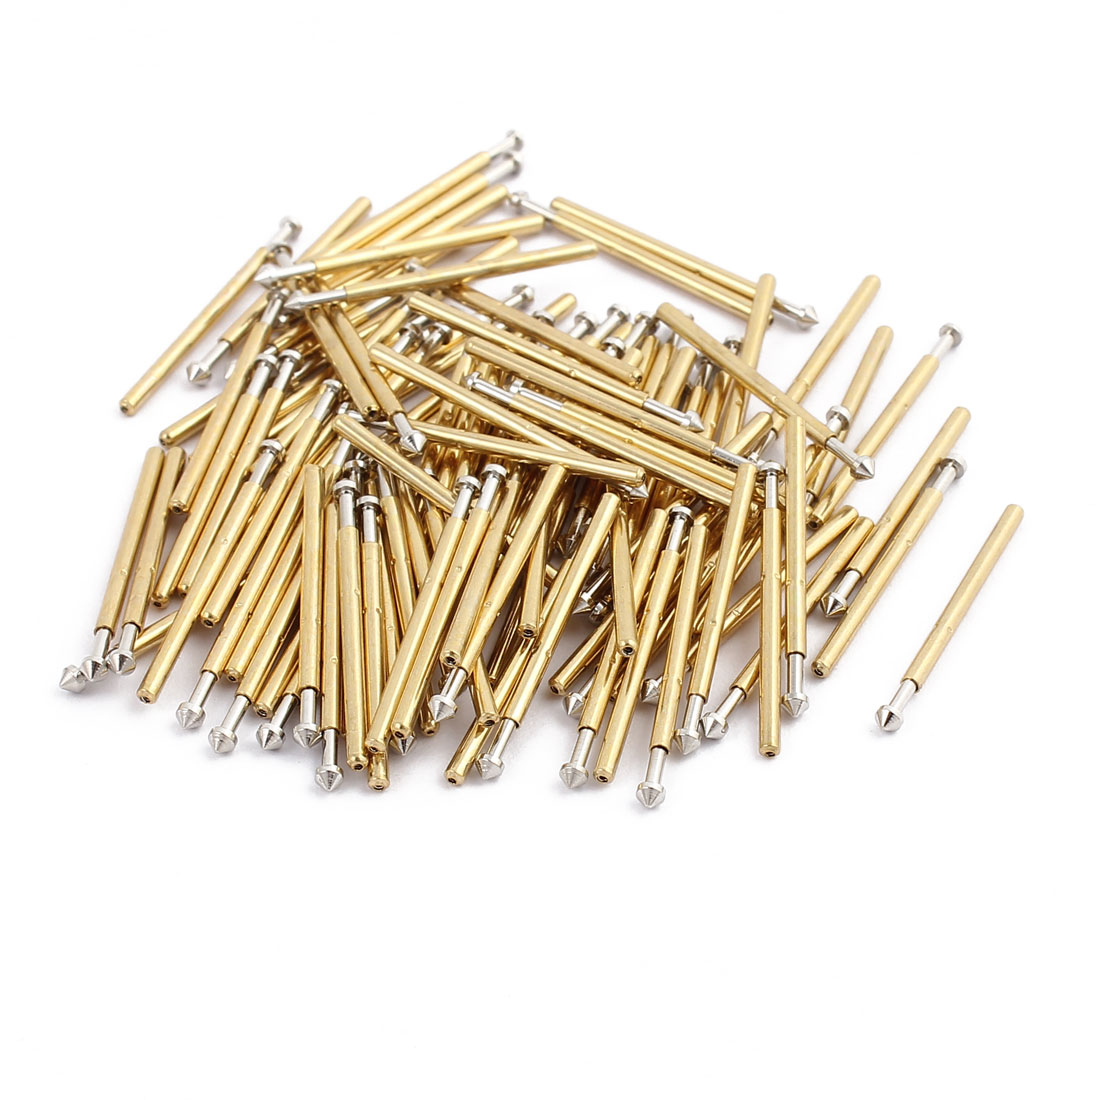 100pcs P160-E3 1.4mm Dia 22.8mm Length Metal Spring Pressure Test Probe Needle